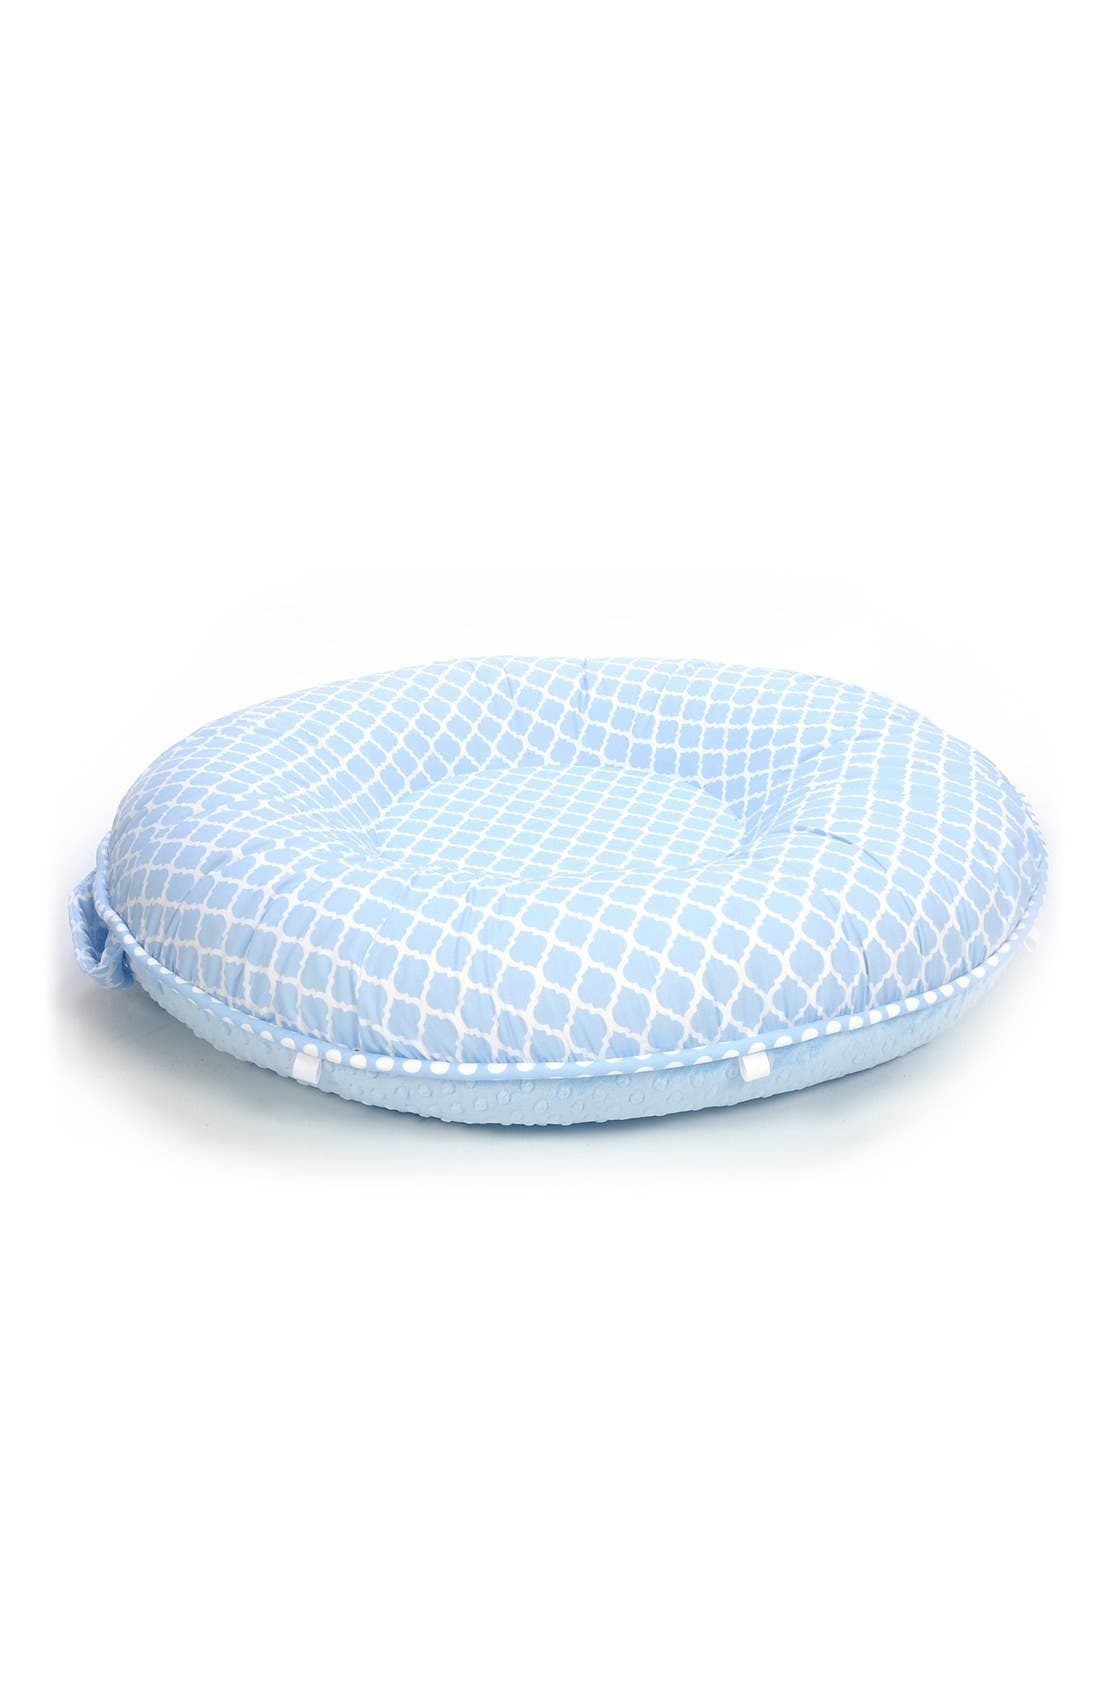 Main Image - Pello 'Jack' Portable Floor Pillow